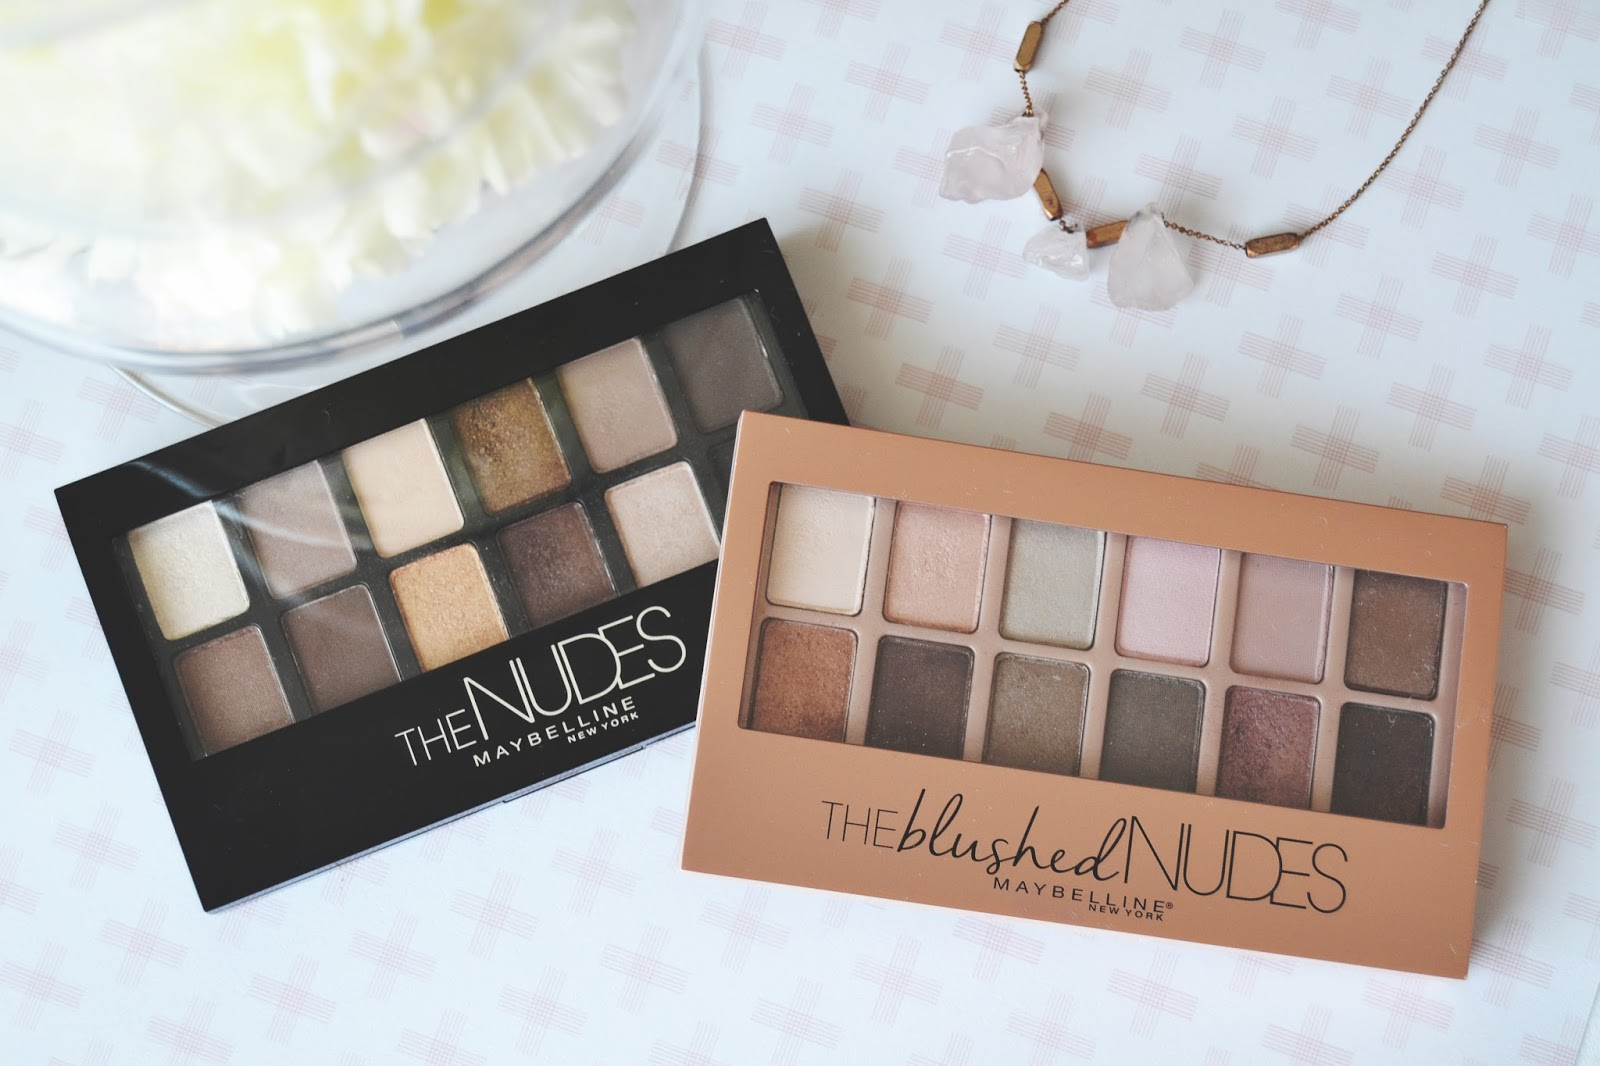 Collection eyes uncovered nude rose palette review and photos